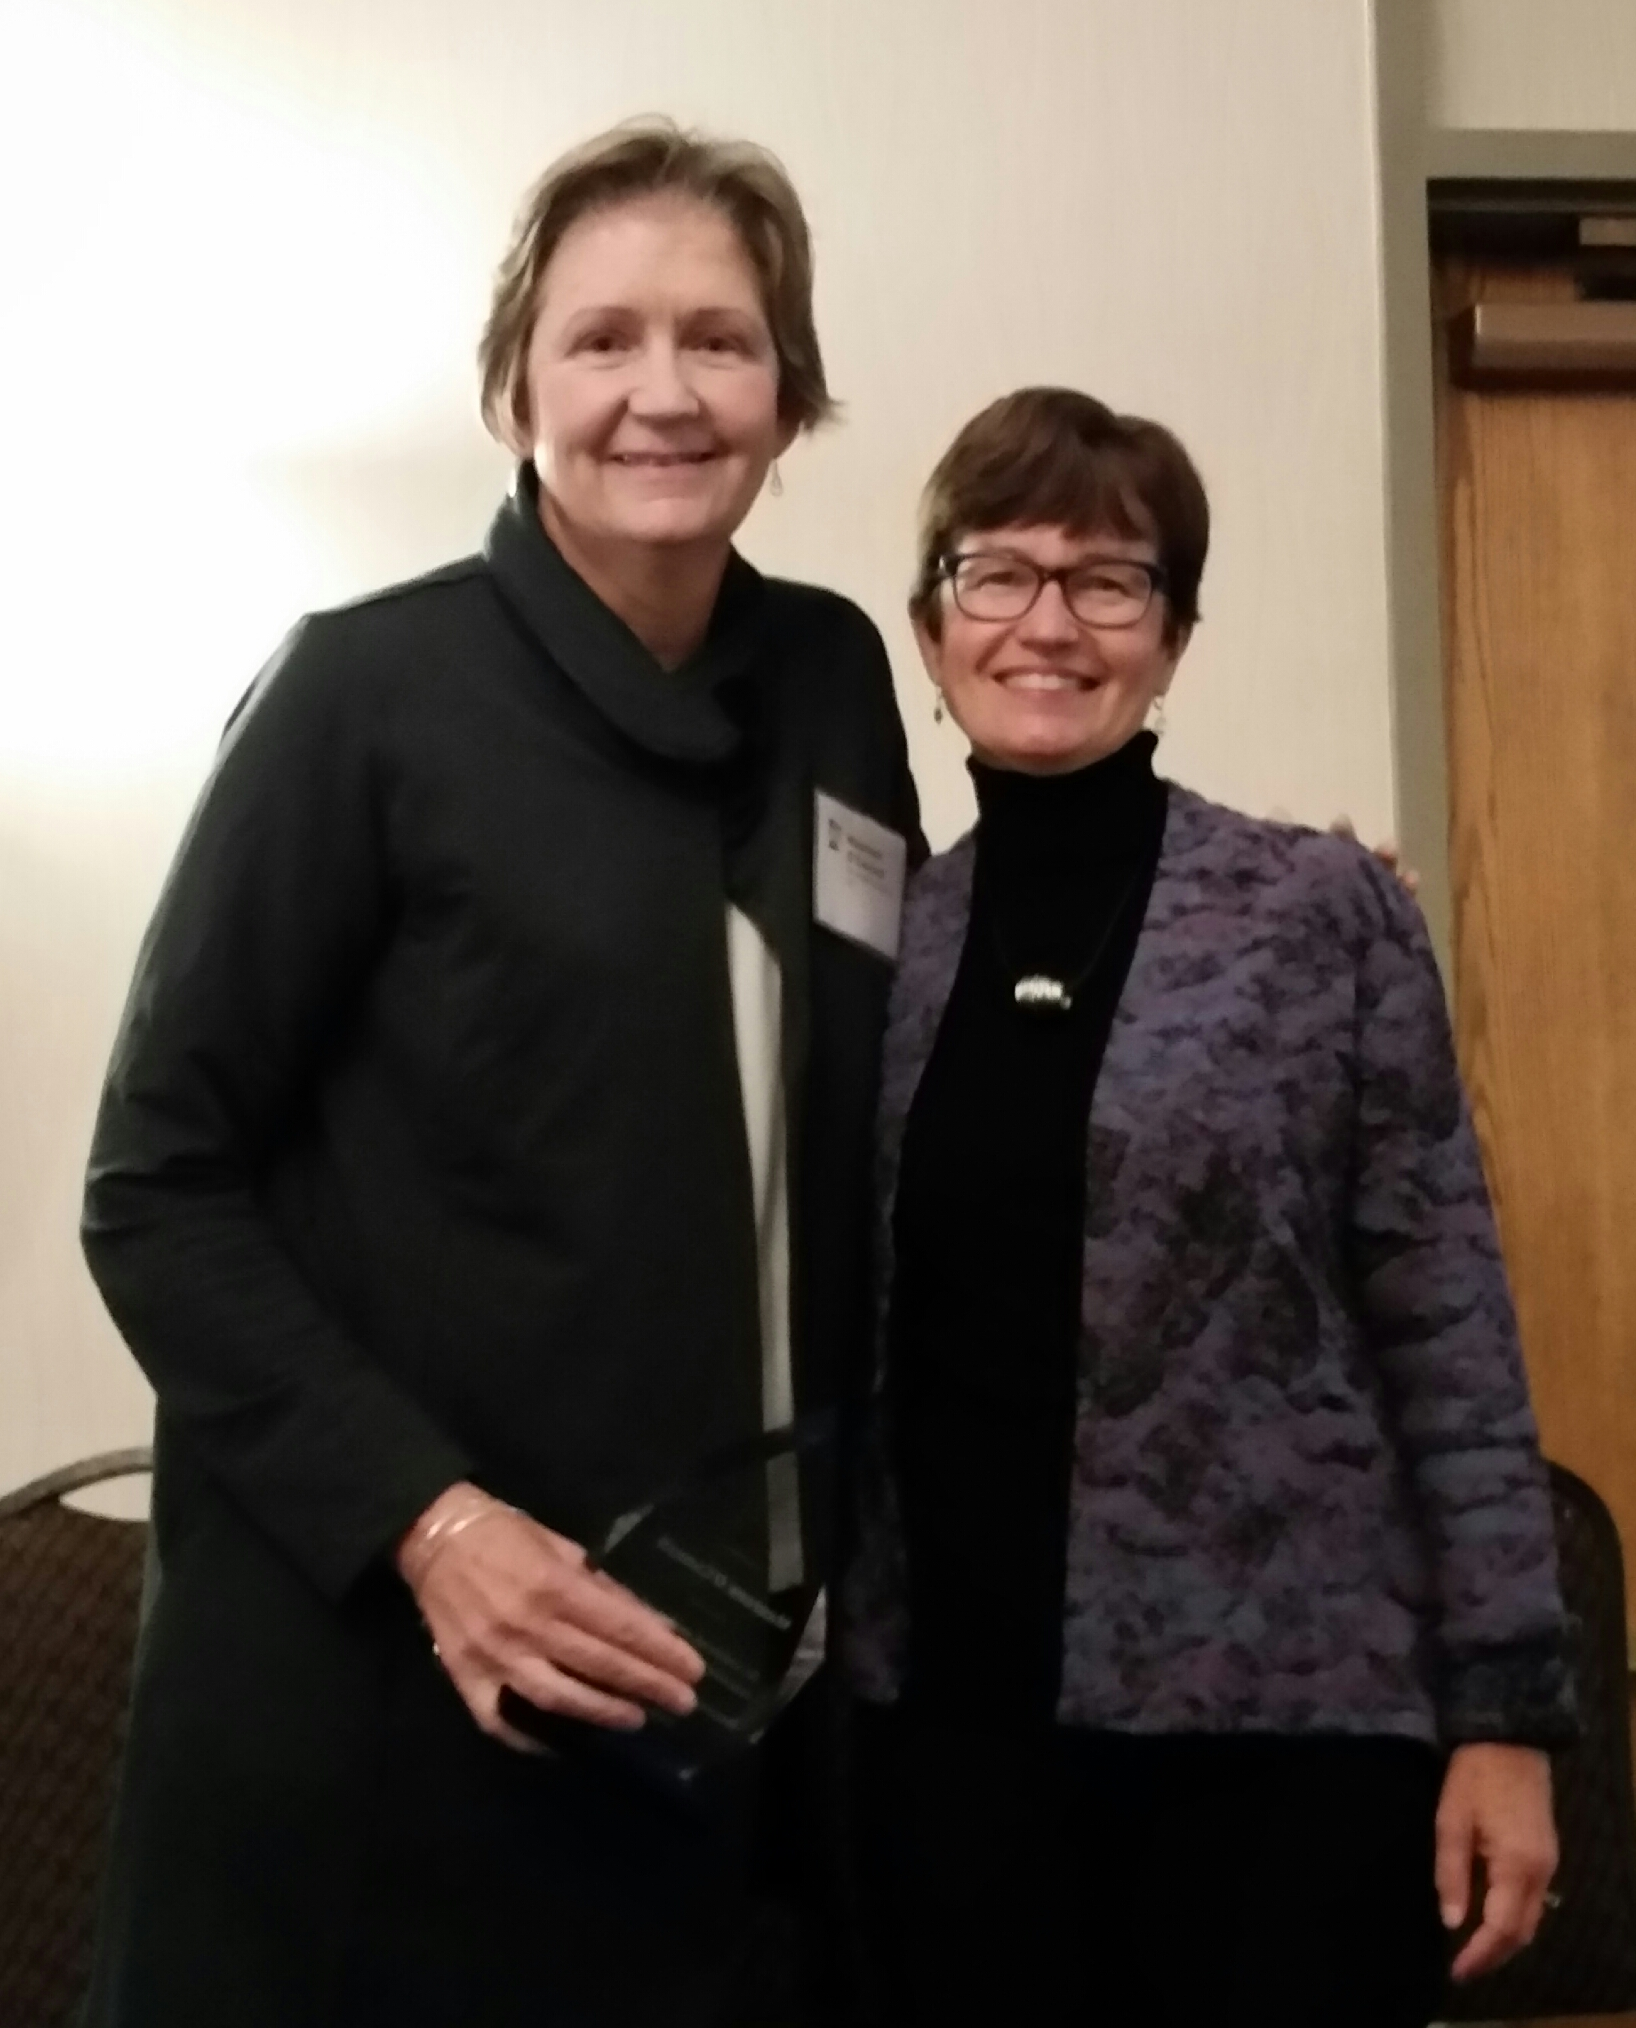 Maureen O'Connell and Cathy Haukedahl, 2017 Pillars of Justice